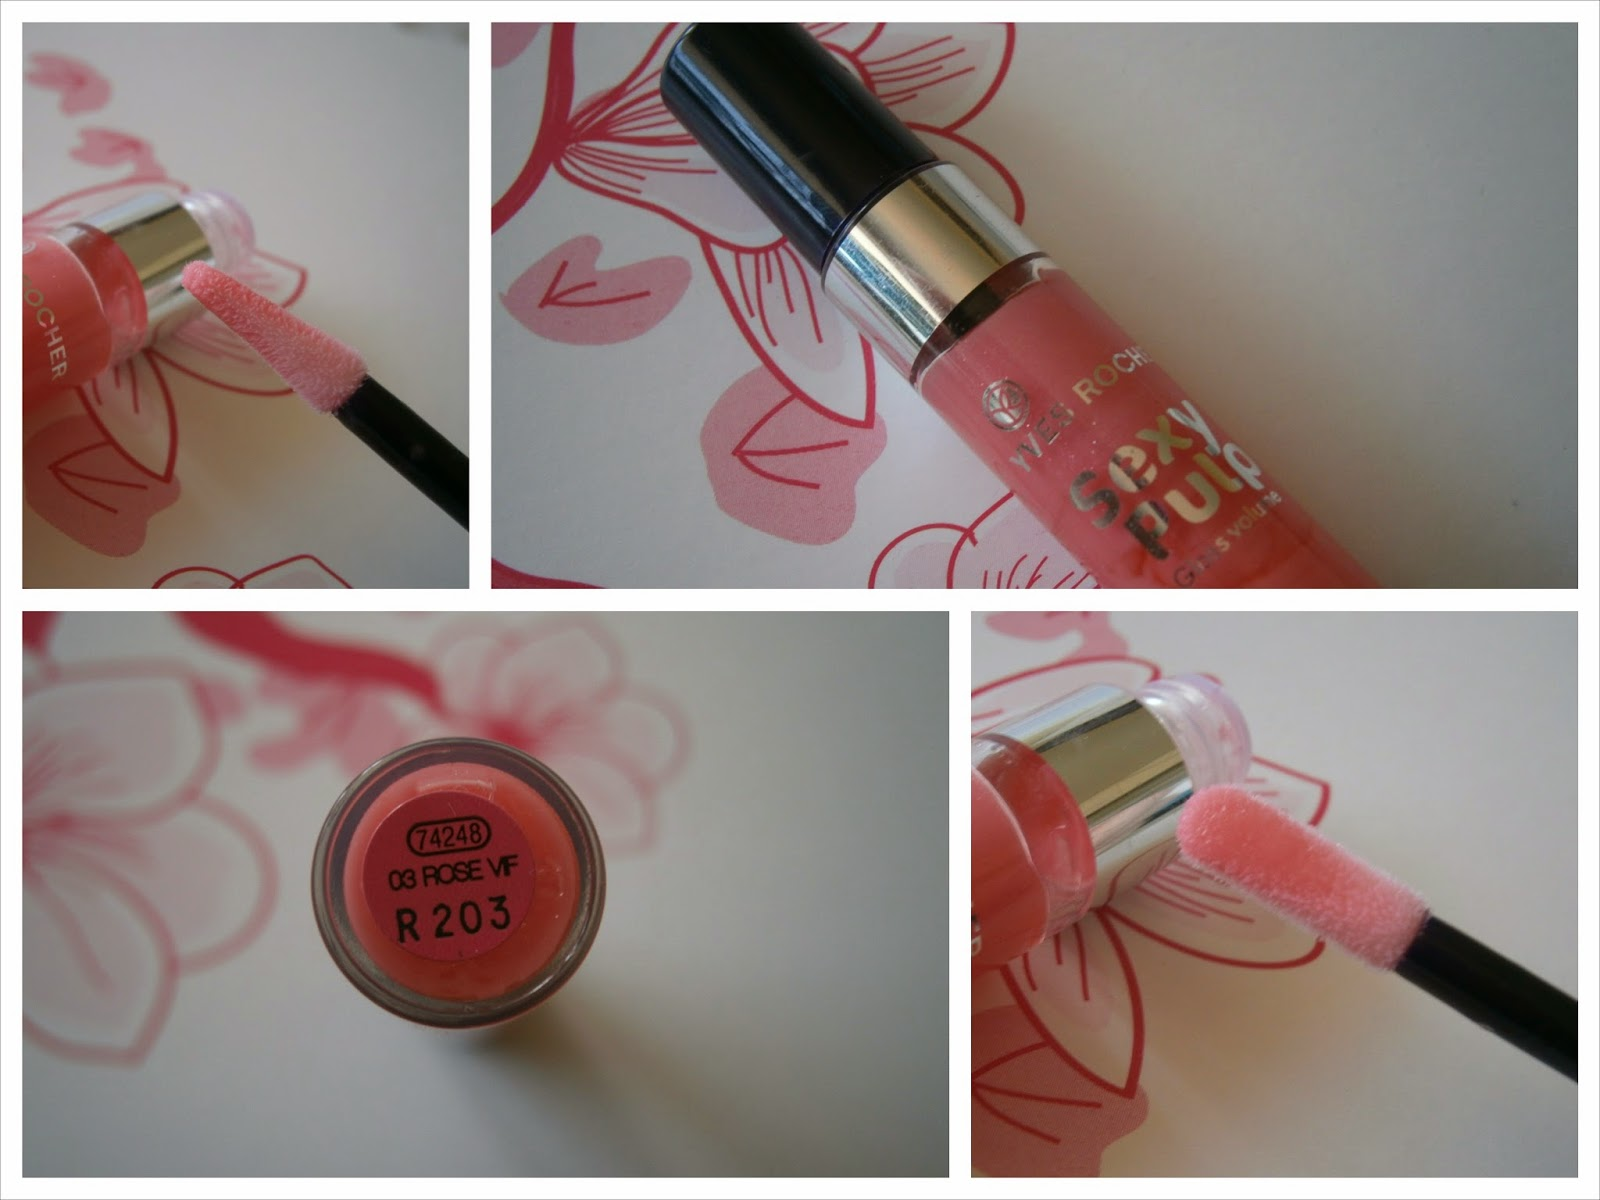 Yves Rocher Sexy Pulp 03 Rose Vif